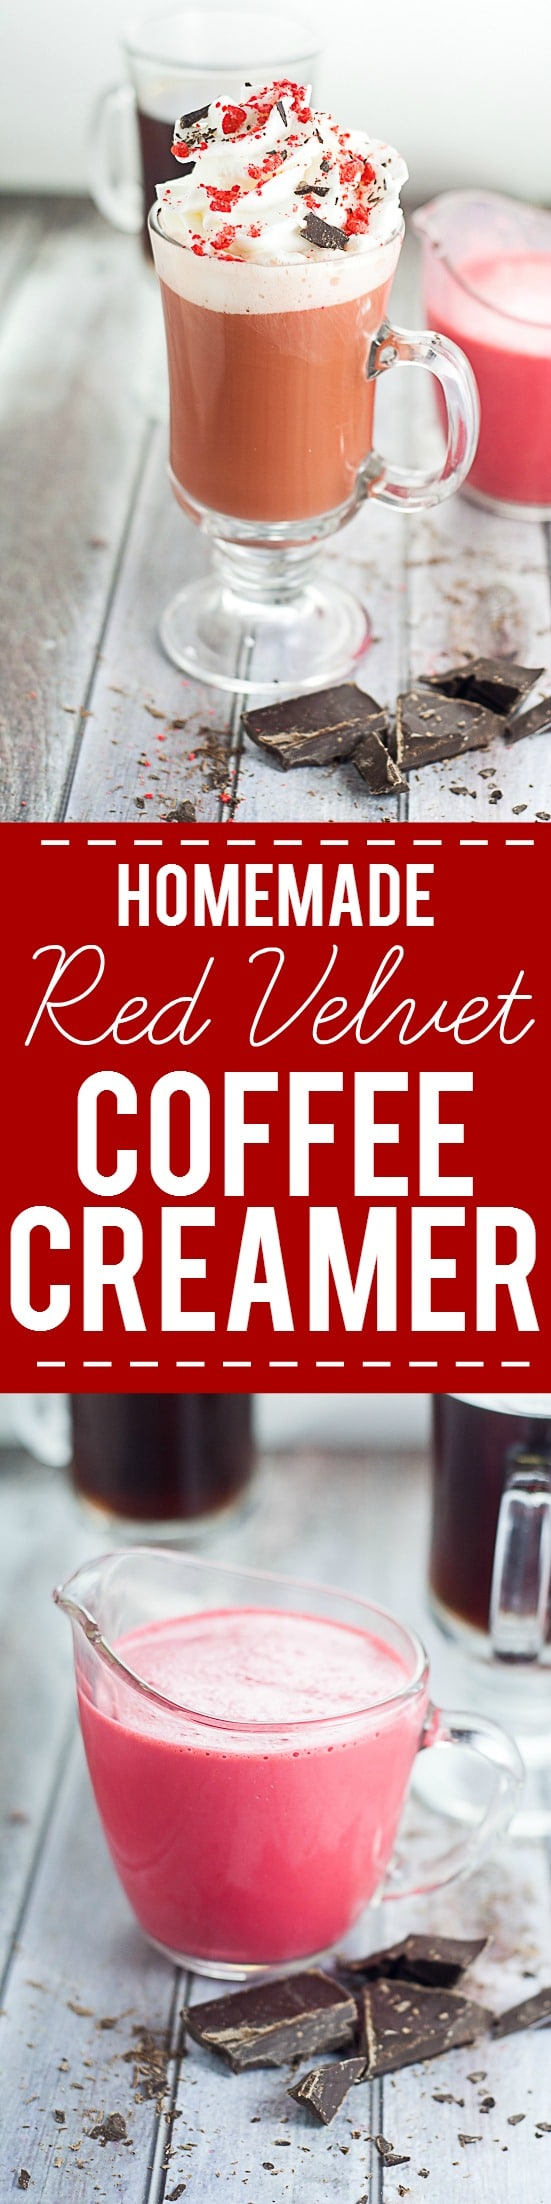 Homemade Red Velvet Coffee Creamer Recipe -Have your cake and drink it too with this delightful and decadent homemade Red Velvet Coffee Creamer recipe. Like cake in a cup!